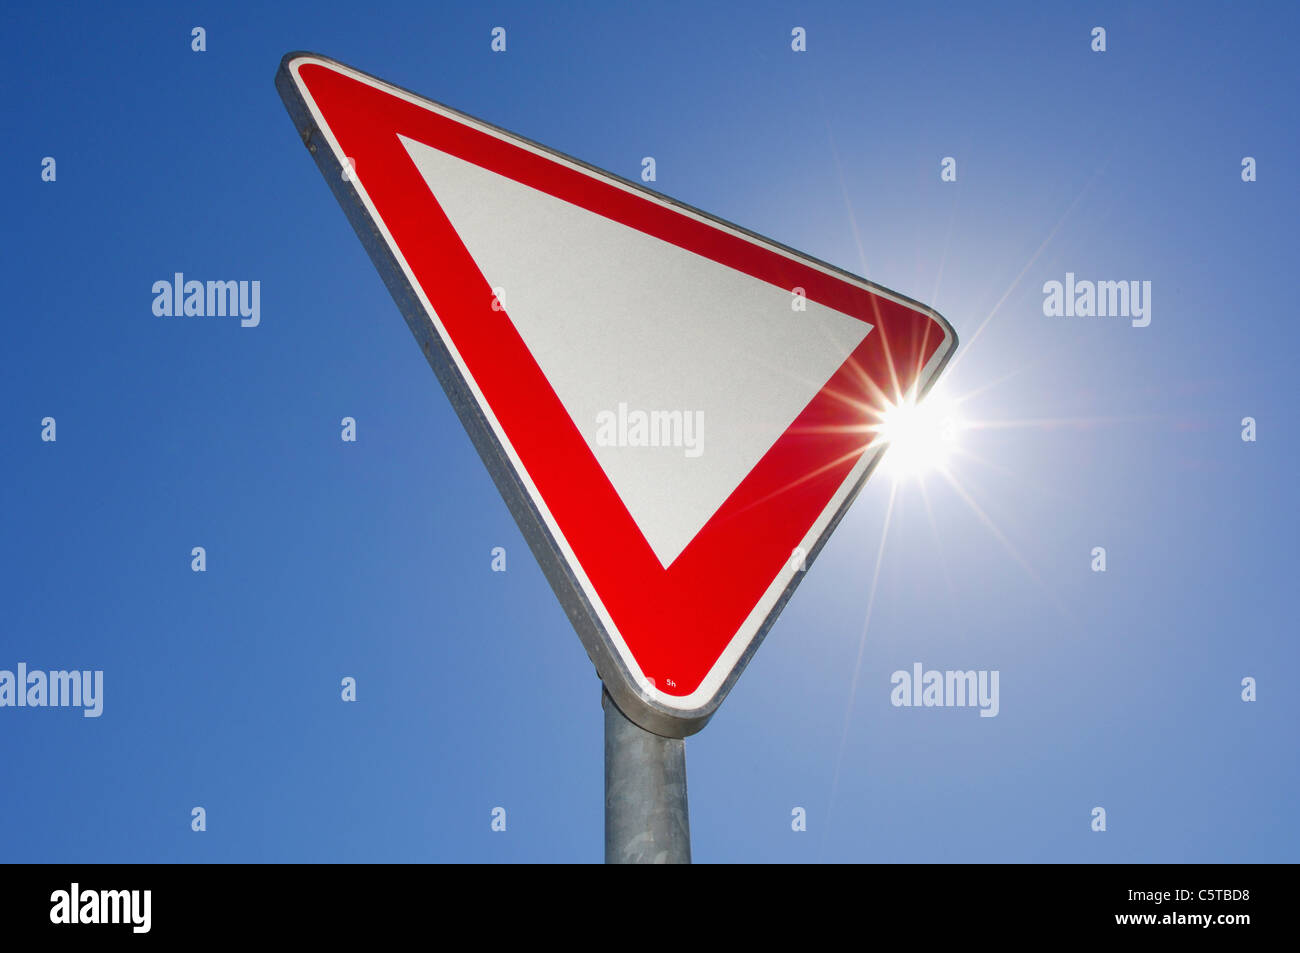 Give way traffic sign against blue sky Stock Photo